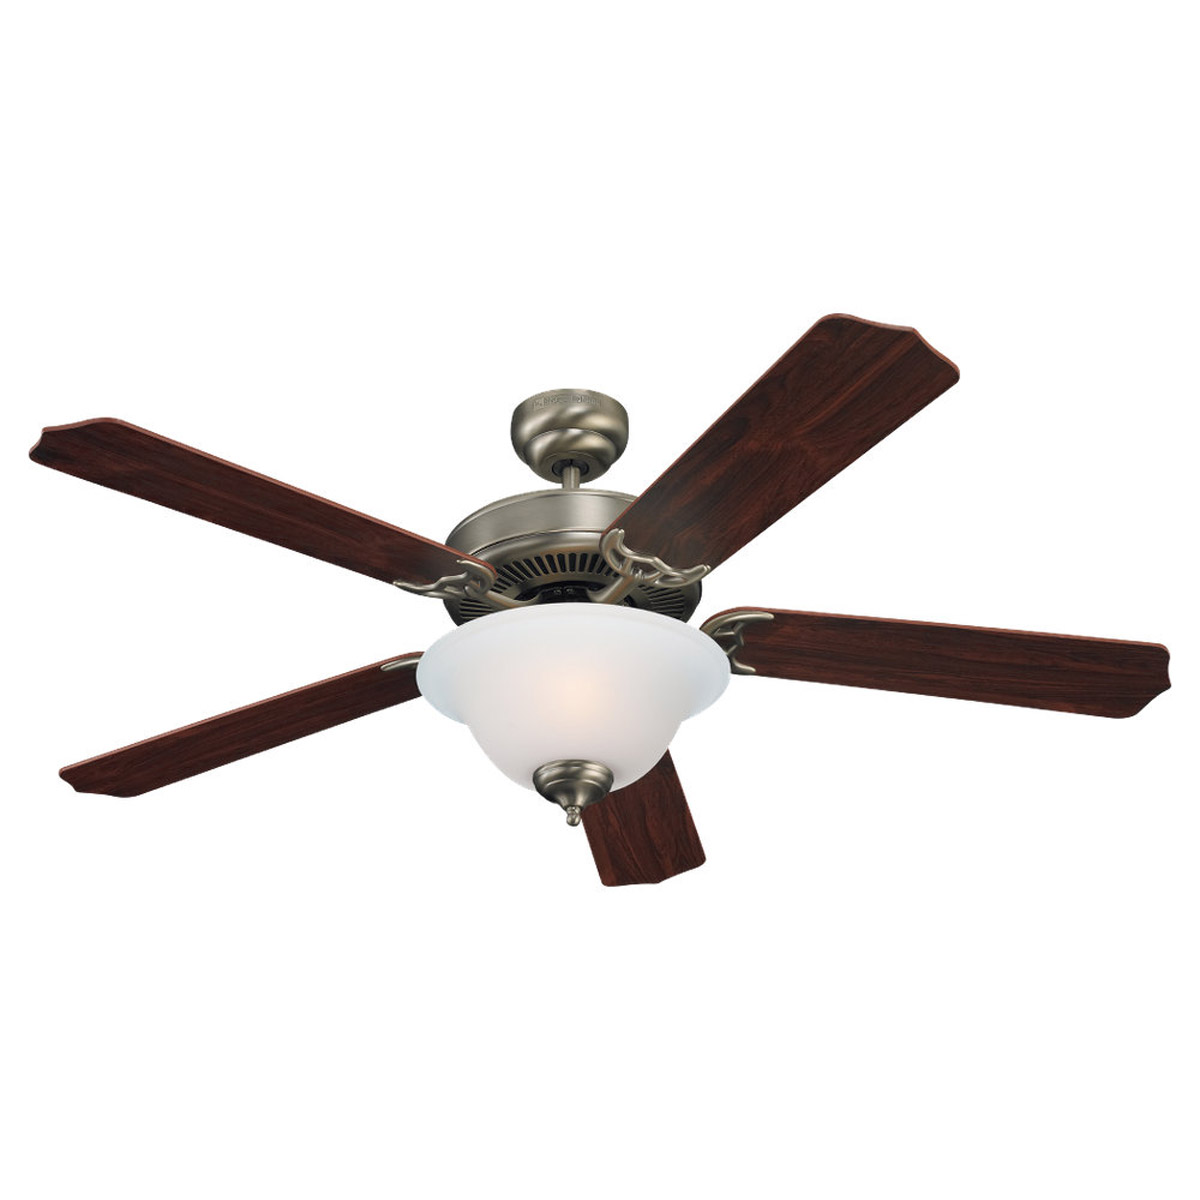 Sea Gull 15030BLE-965 Quality Max Plus 52 inch Antique Brushed Nickel Ceiling Fan in Fluorescent photo